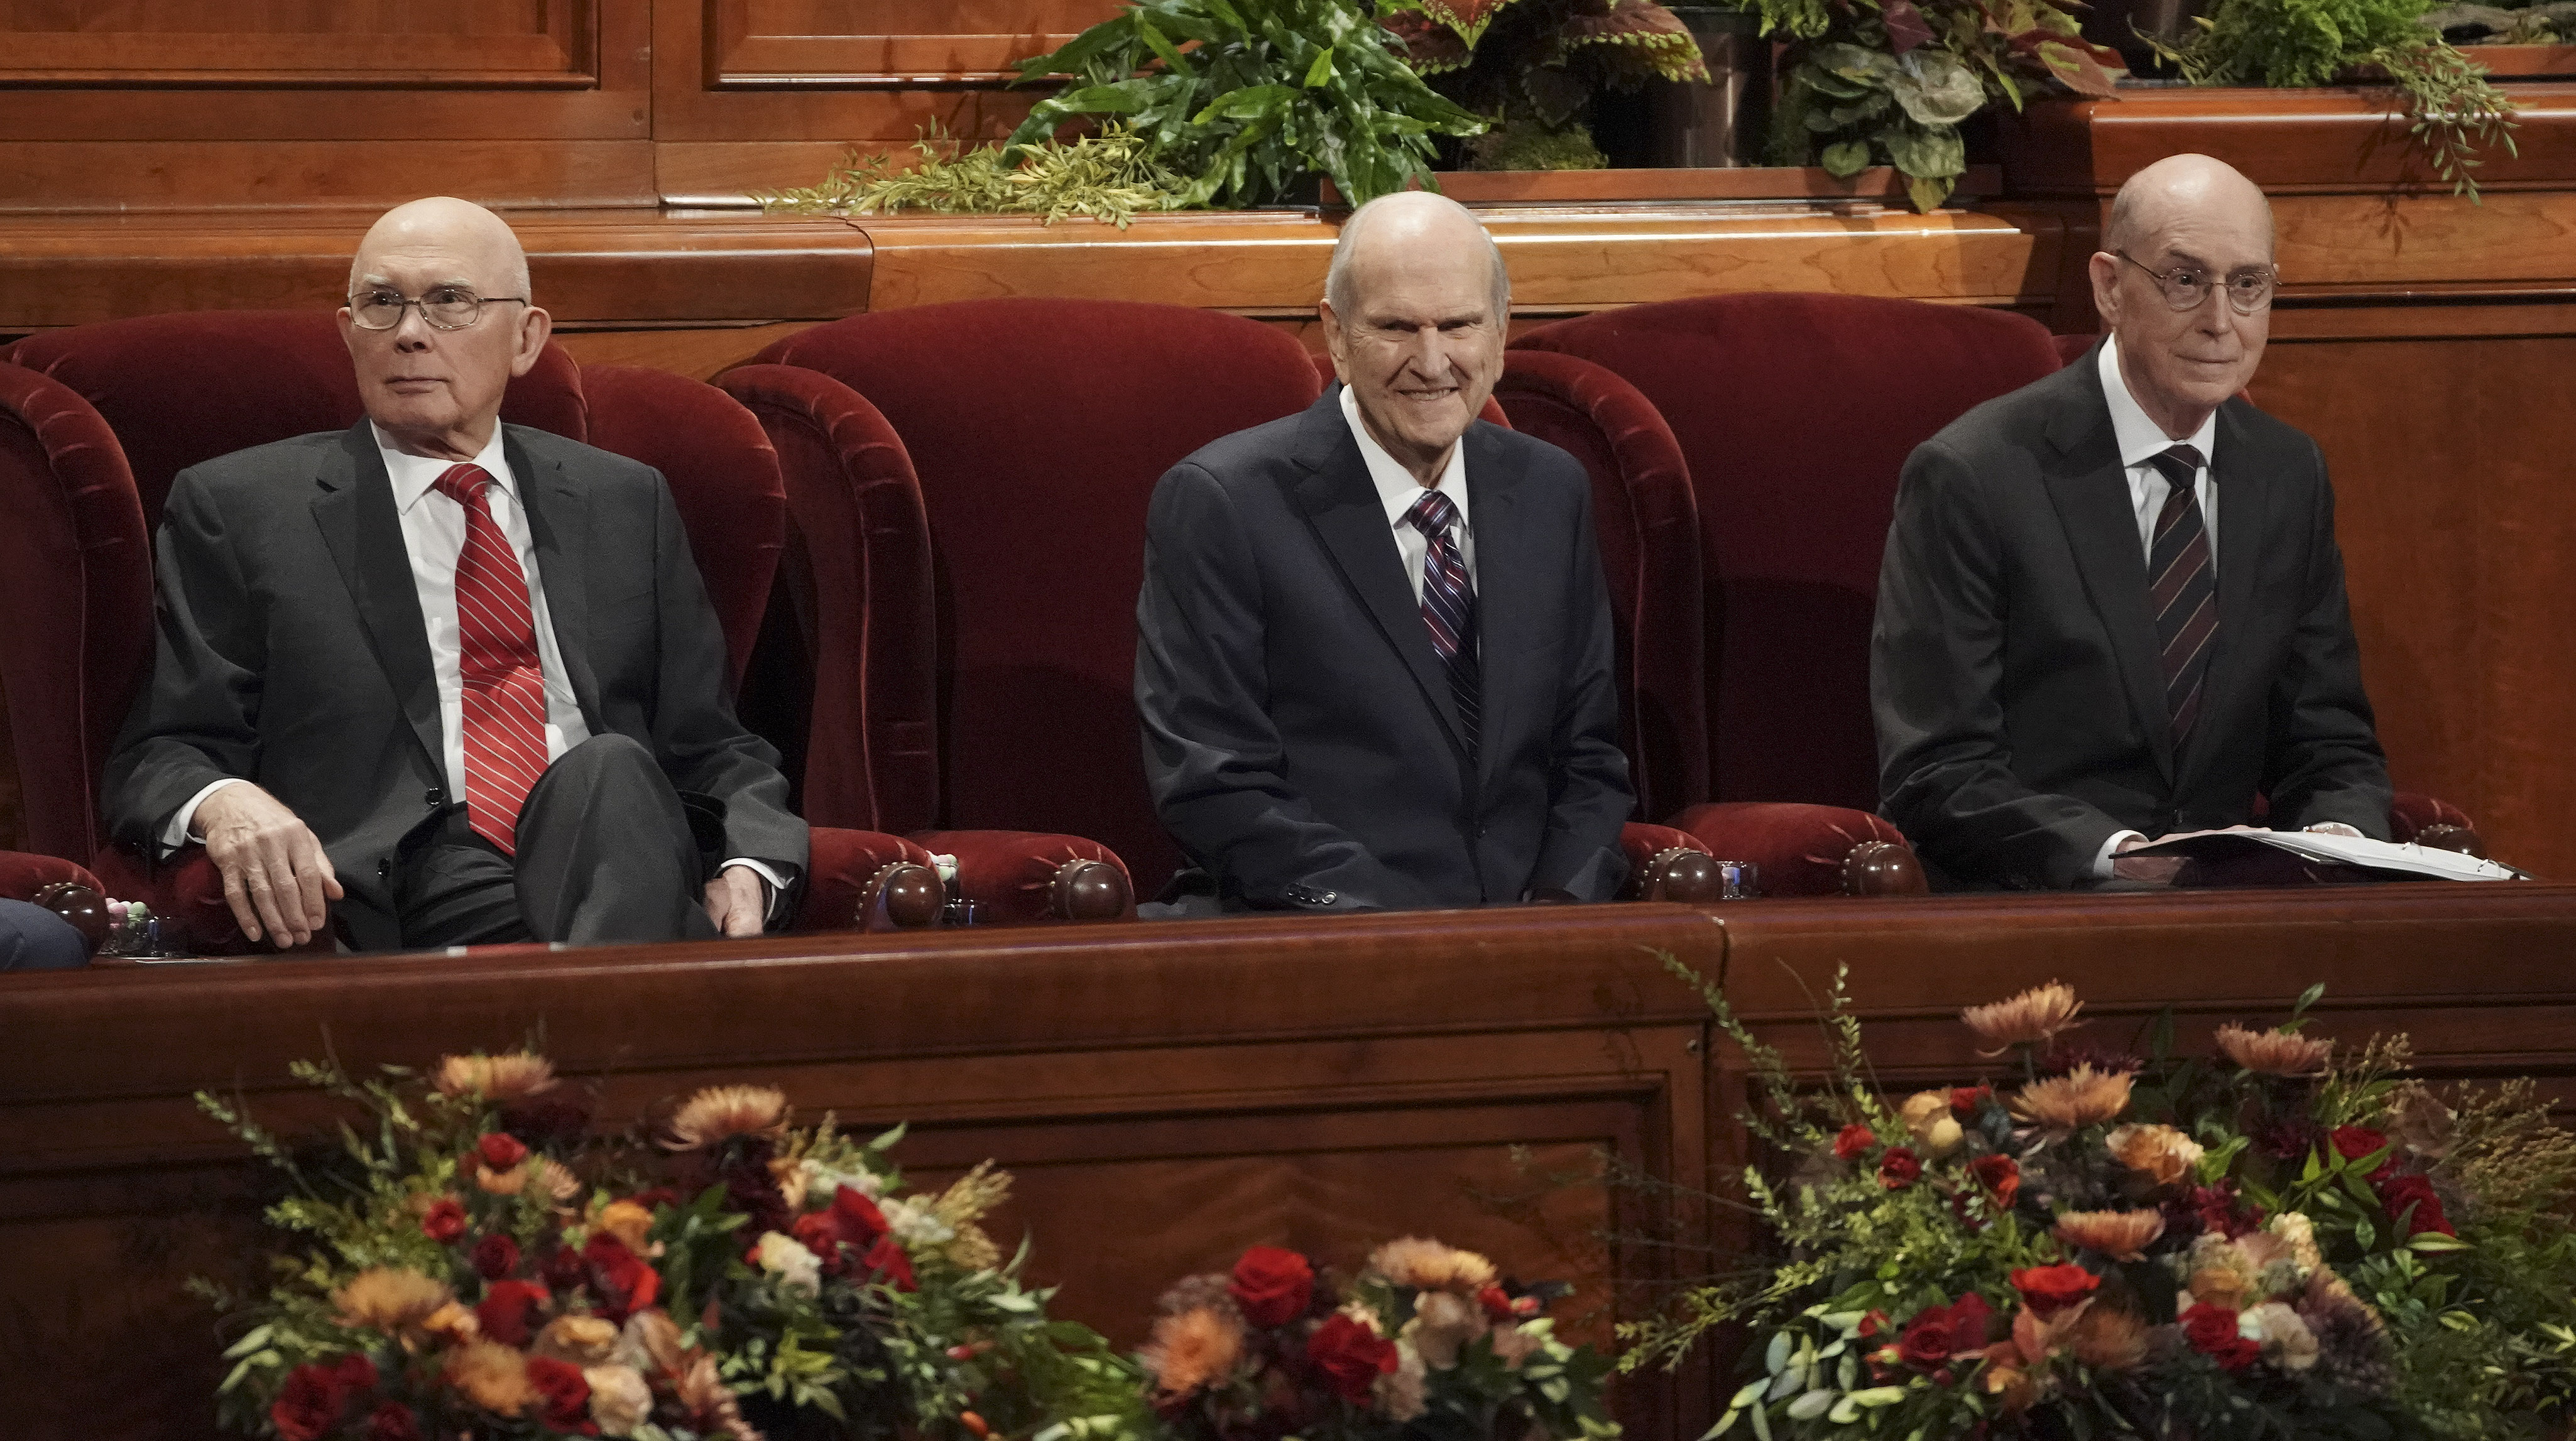 President Russell M. Nelson, center, and his counselors, President Dallin H. Oaks, first counselor in the First Presidency, left, and President Henry B. Eyring, second counselor in the First Presidency, right, during the Saturday morning session of the 189th Semiannual General Conference of The Church of Jesus Christ of Latter-day Saints in the Conference Center in Salt Lake City on Saturday, Oct. 5, 2019.